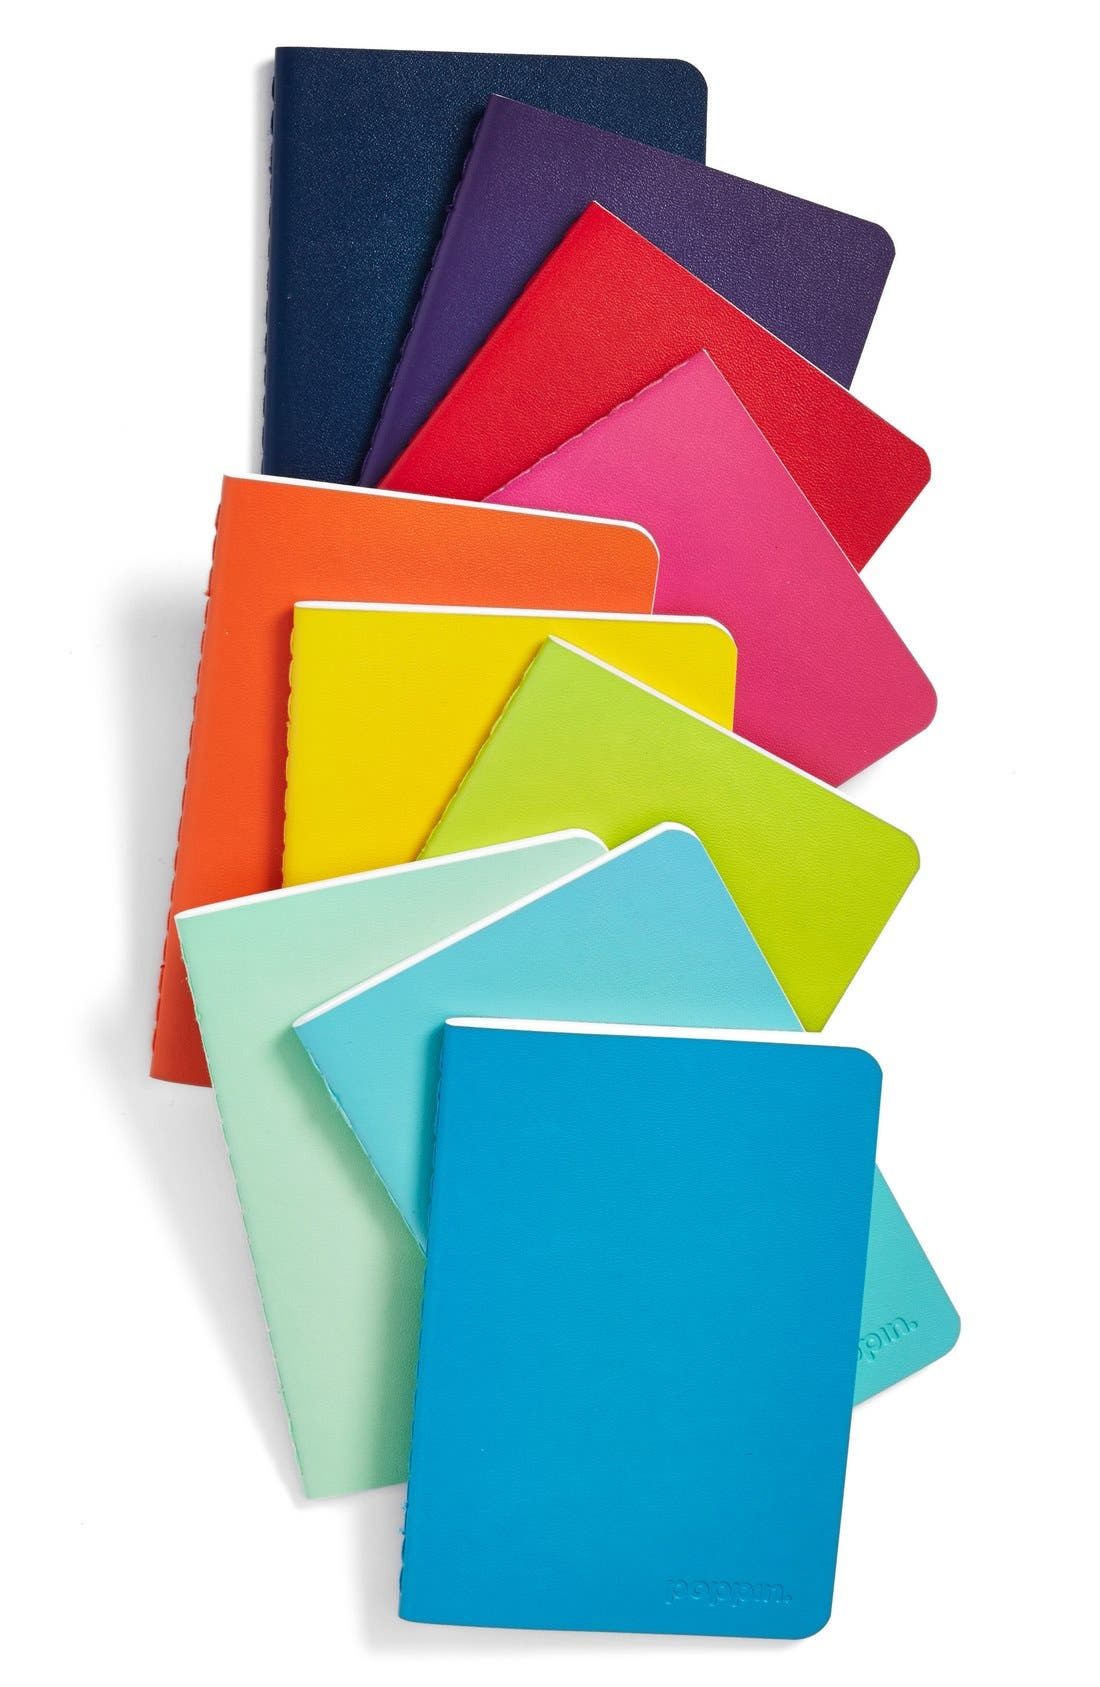 Alternate Image 1 Selected - poppin Mini Medley of Soft Cover Notebooks (Set of 10)